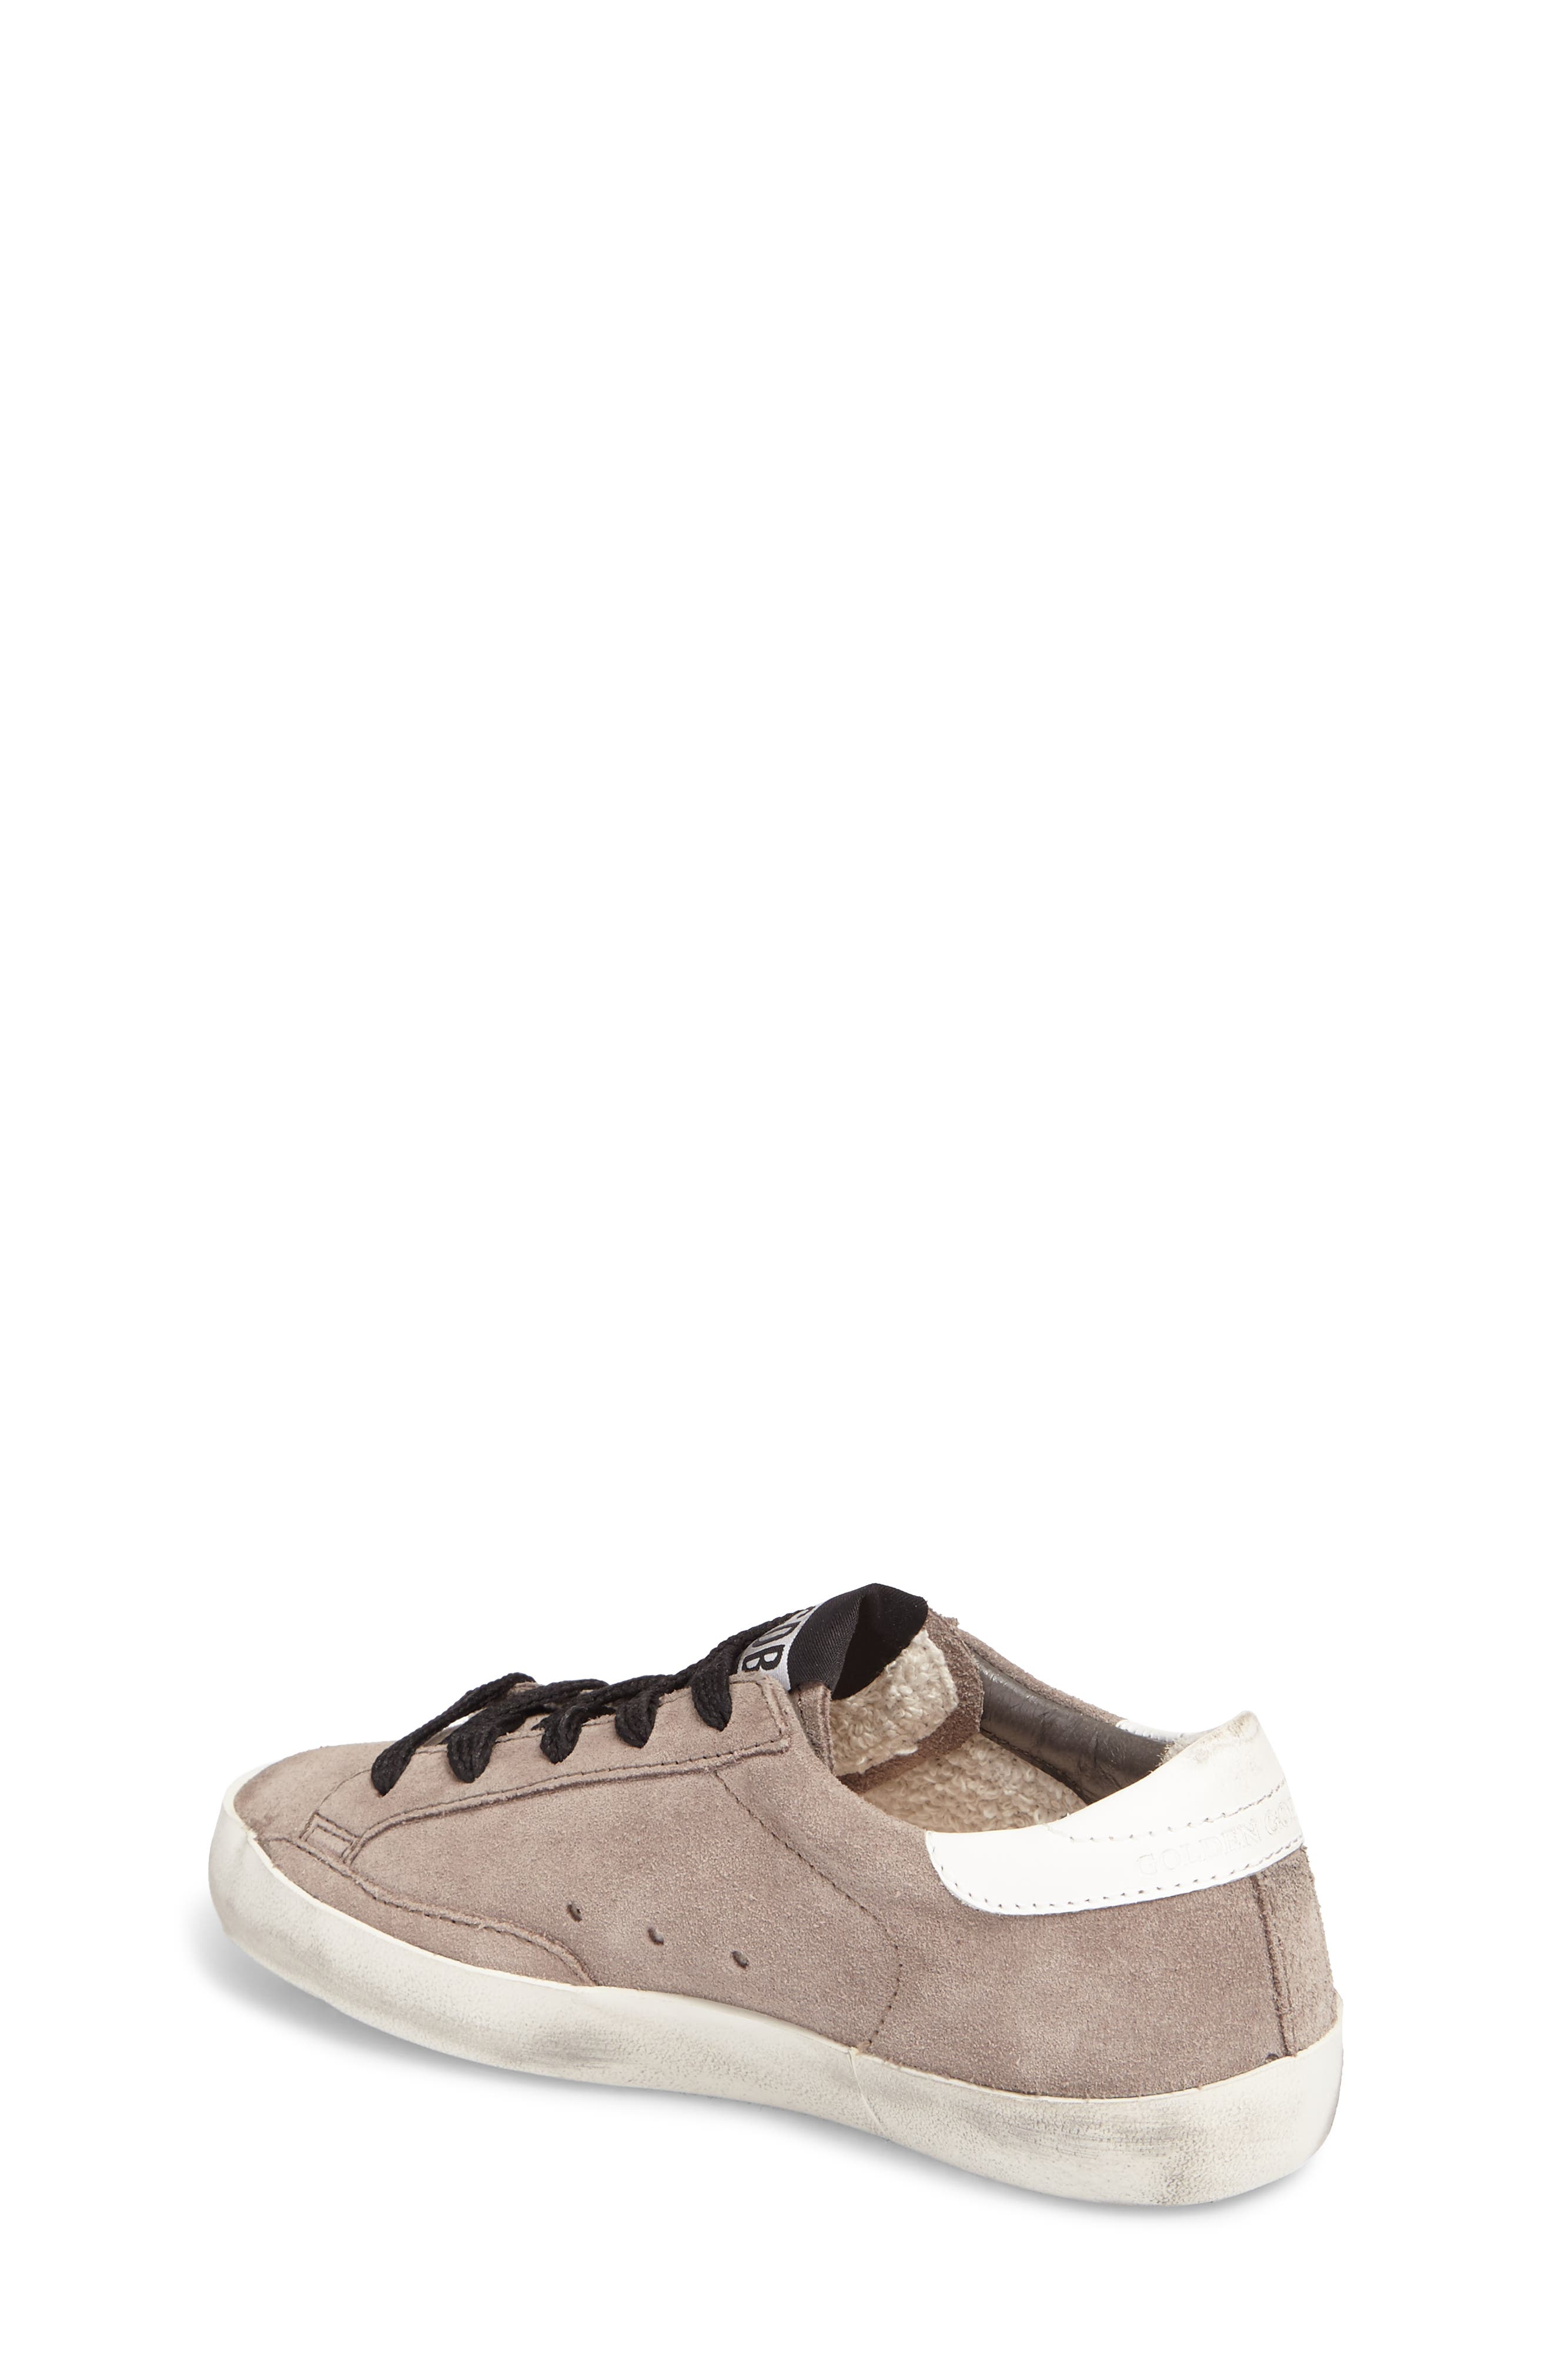 Superstar Low Top Sneaker,                             Alternate thumbnail 2, color,                             Mid Grey Suede